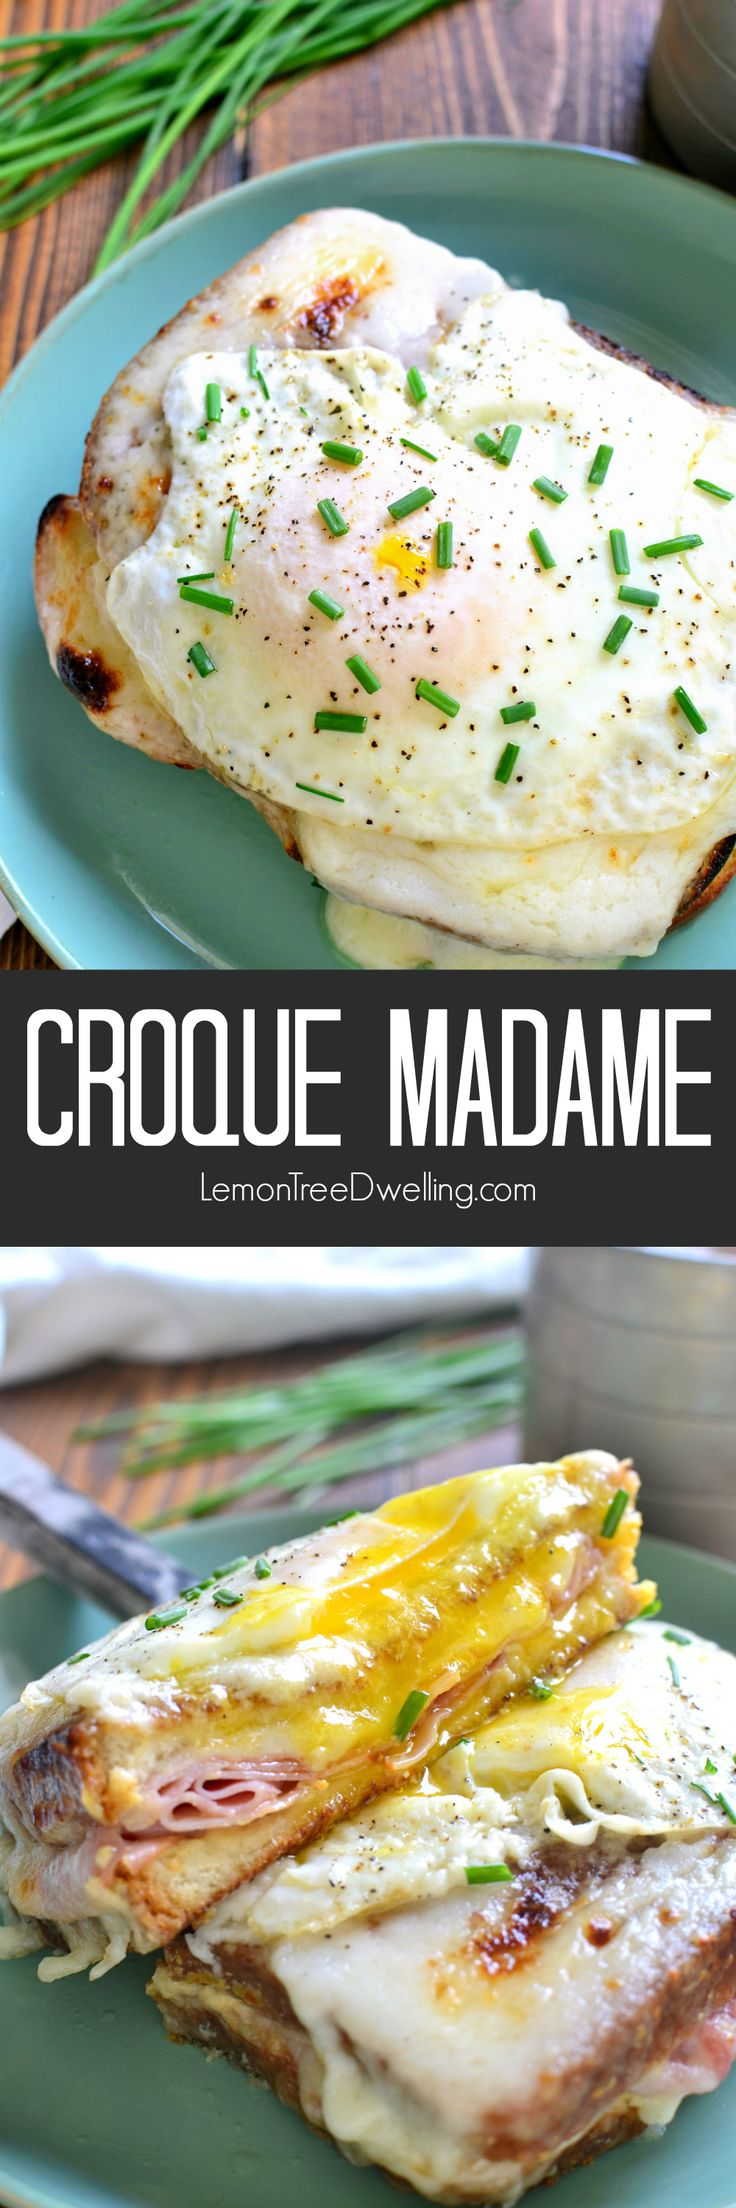 Recipes to Make: Croque Madame